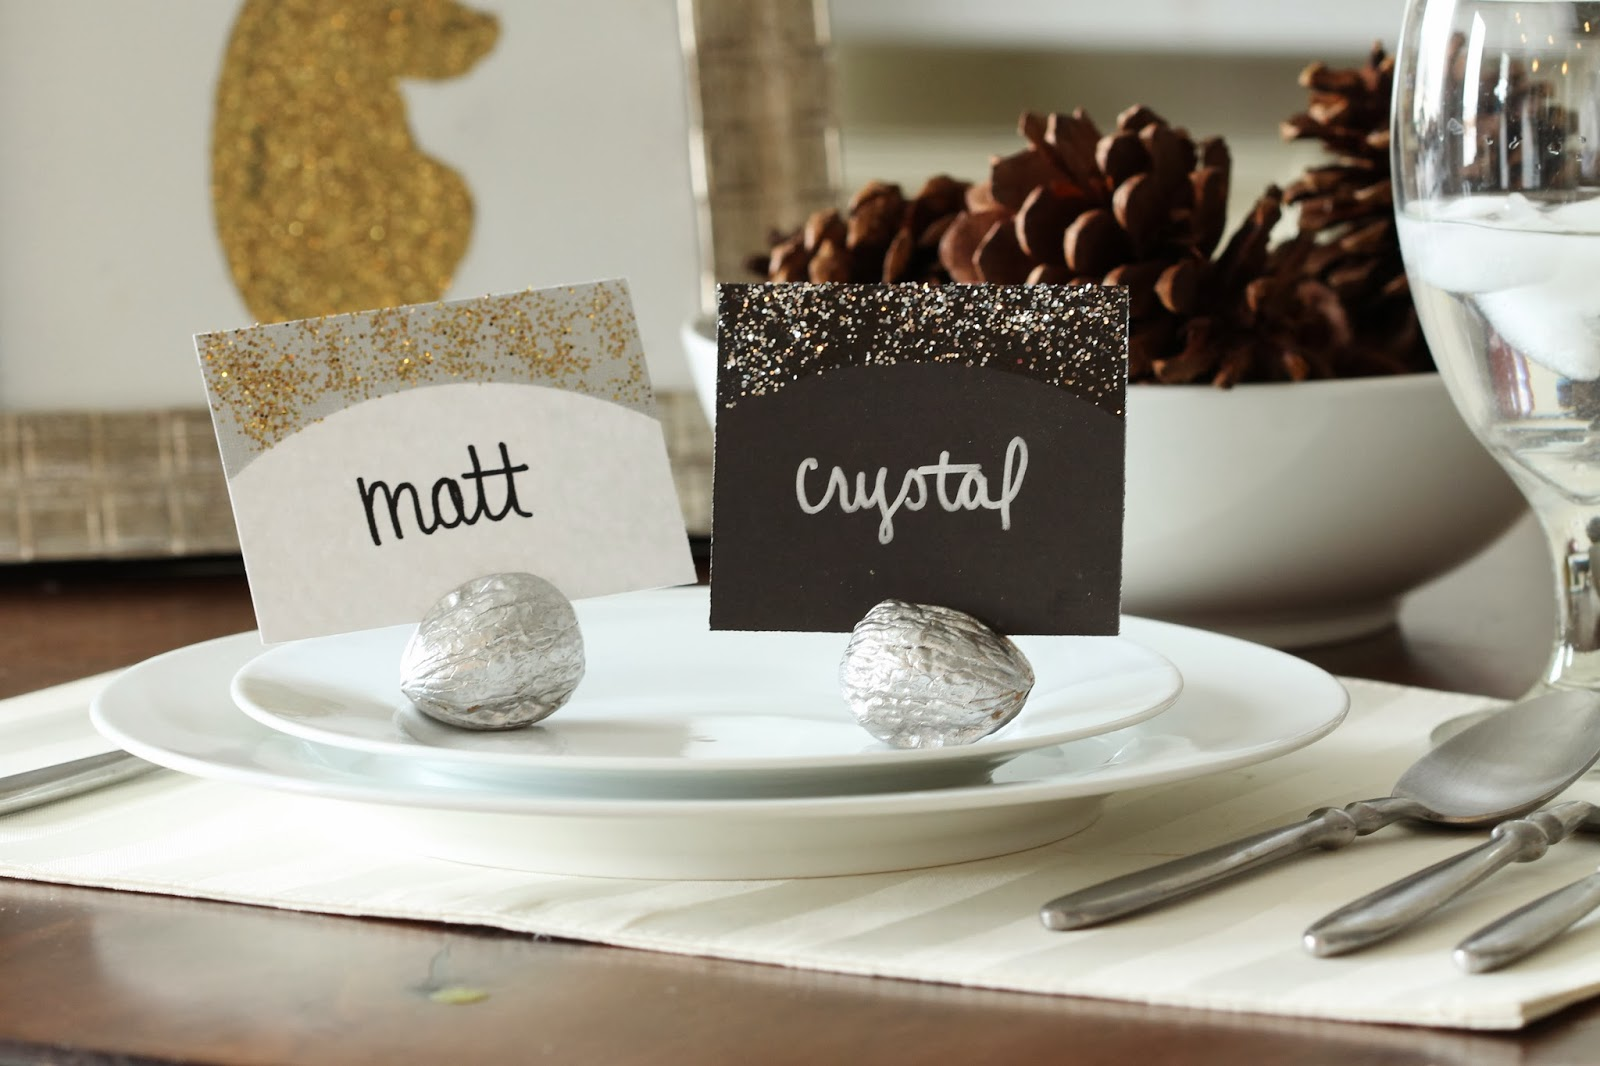 pass the fresh walnut name tag holders for your holiday place settings